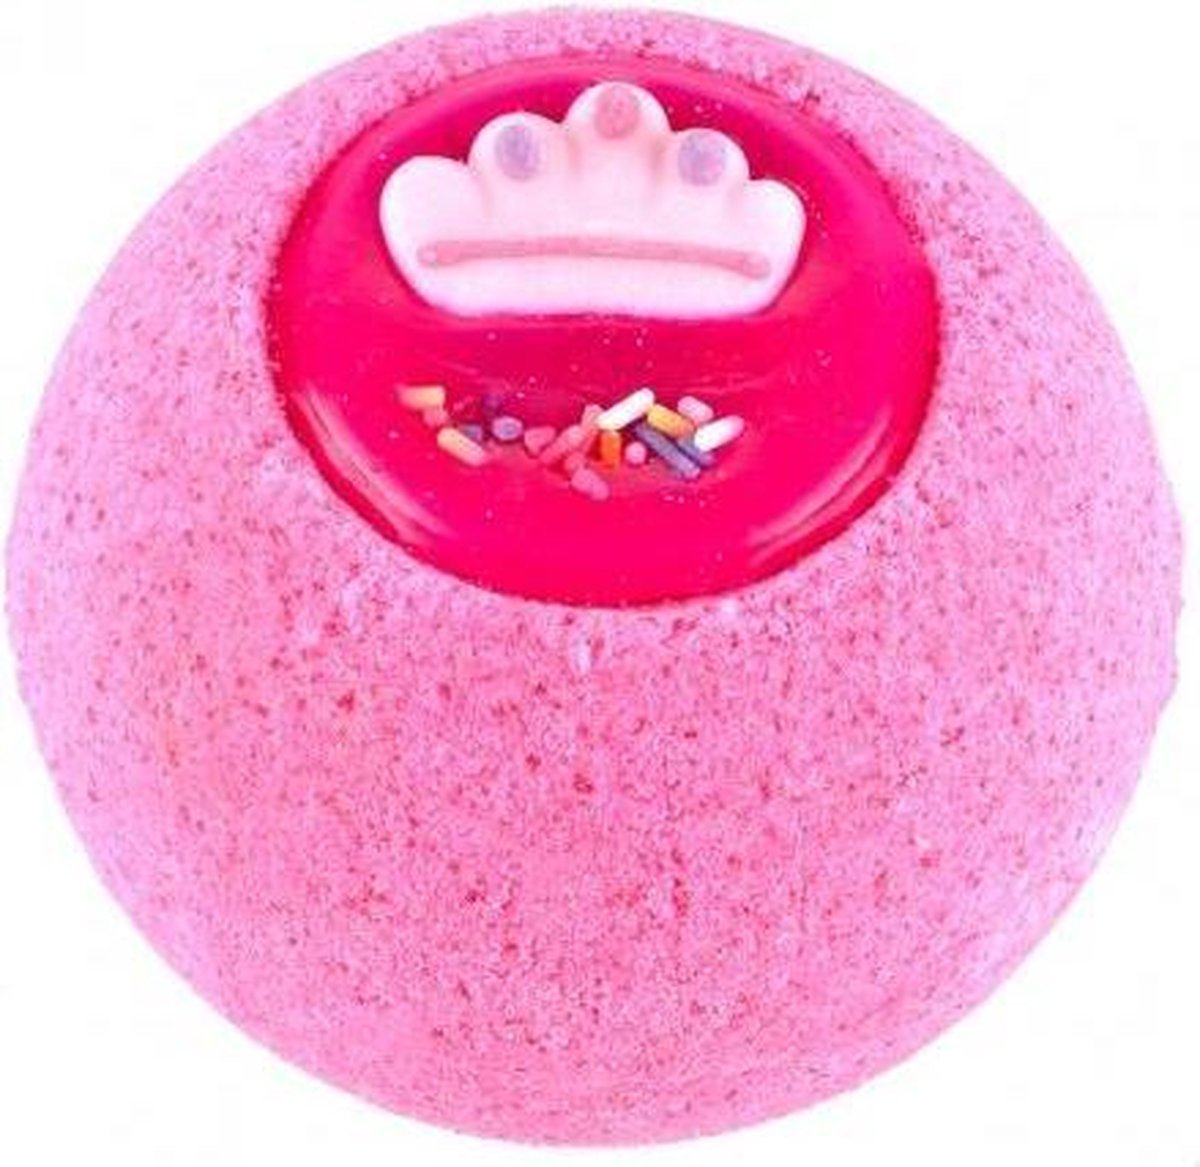 Treets bath ball pir.&princess 1 st